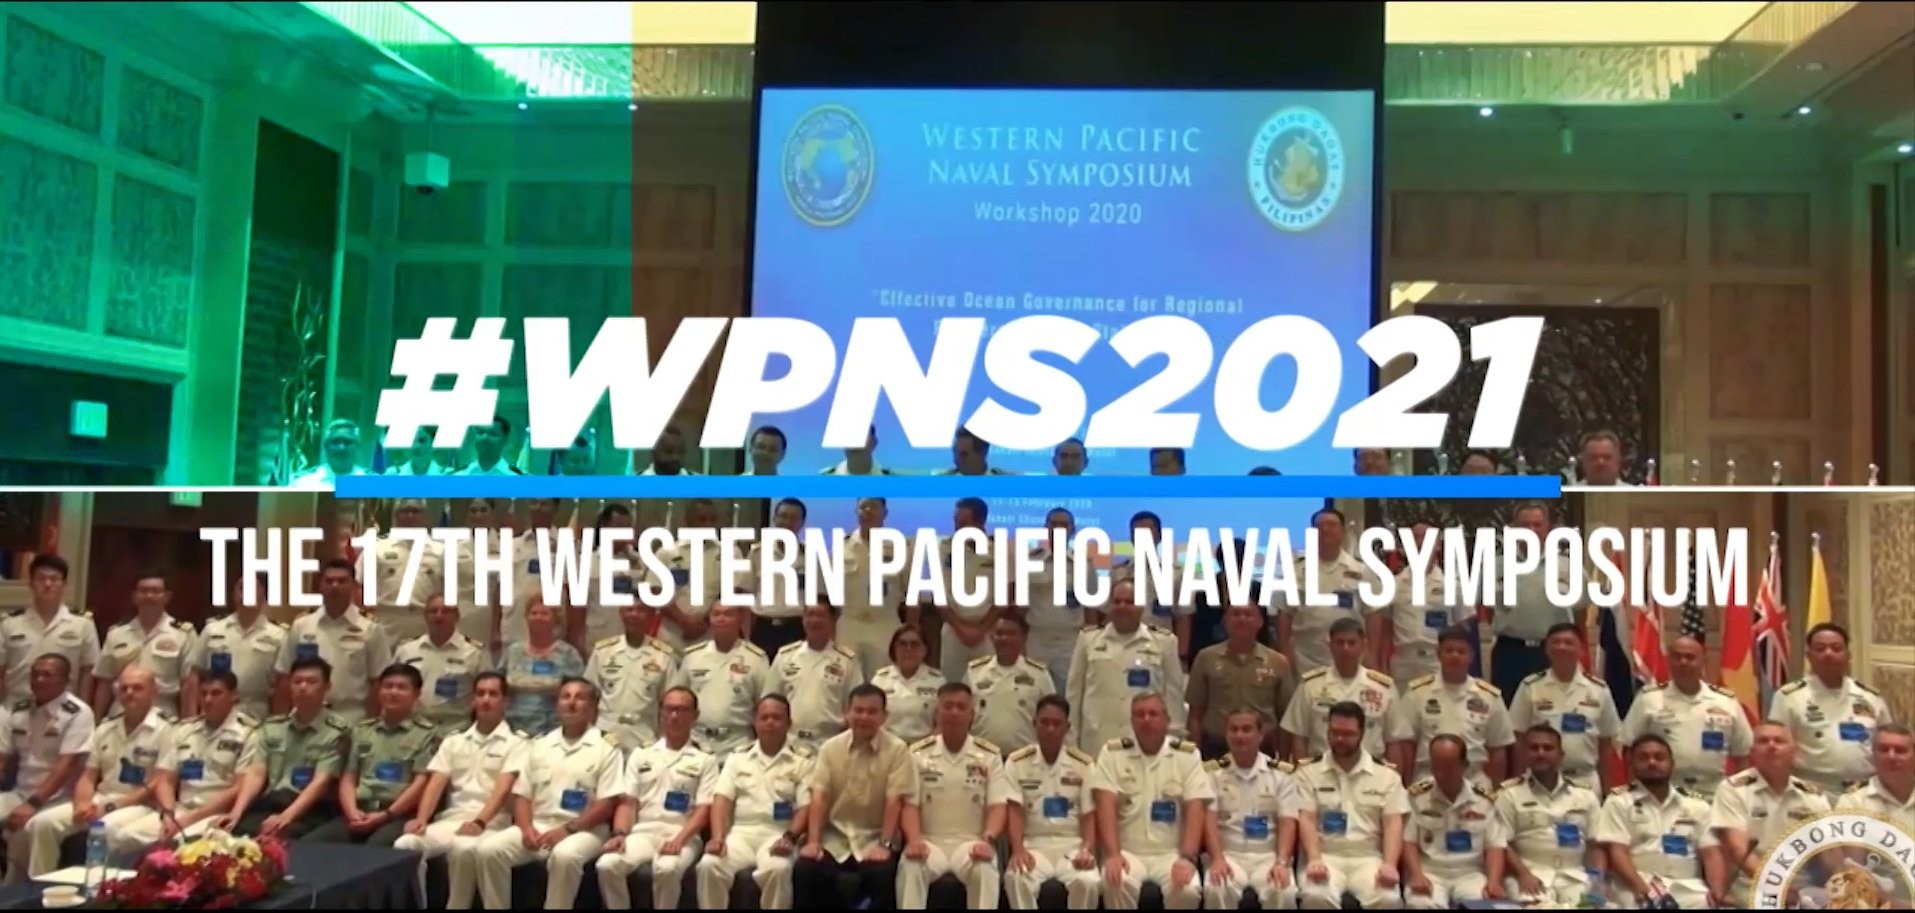 Image Title: 17th Western Pacific Naval Symposium teaser video